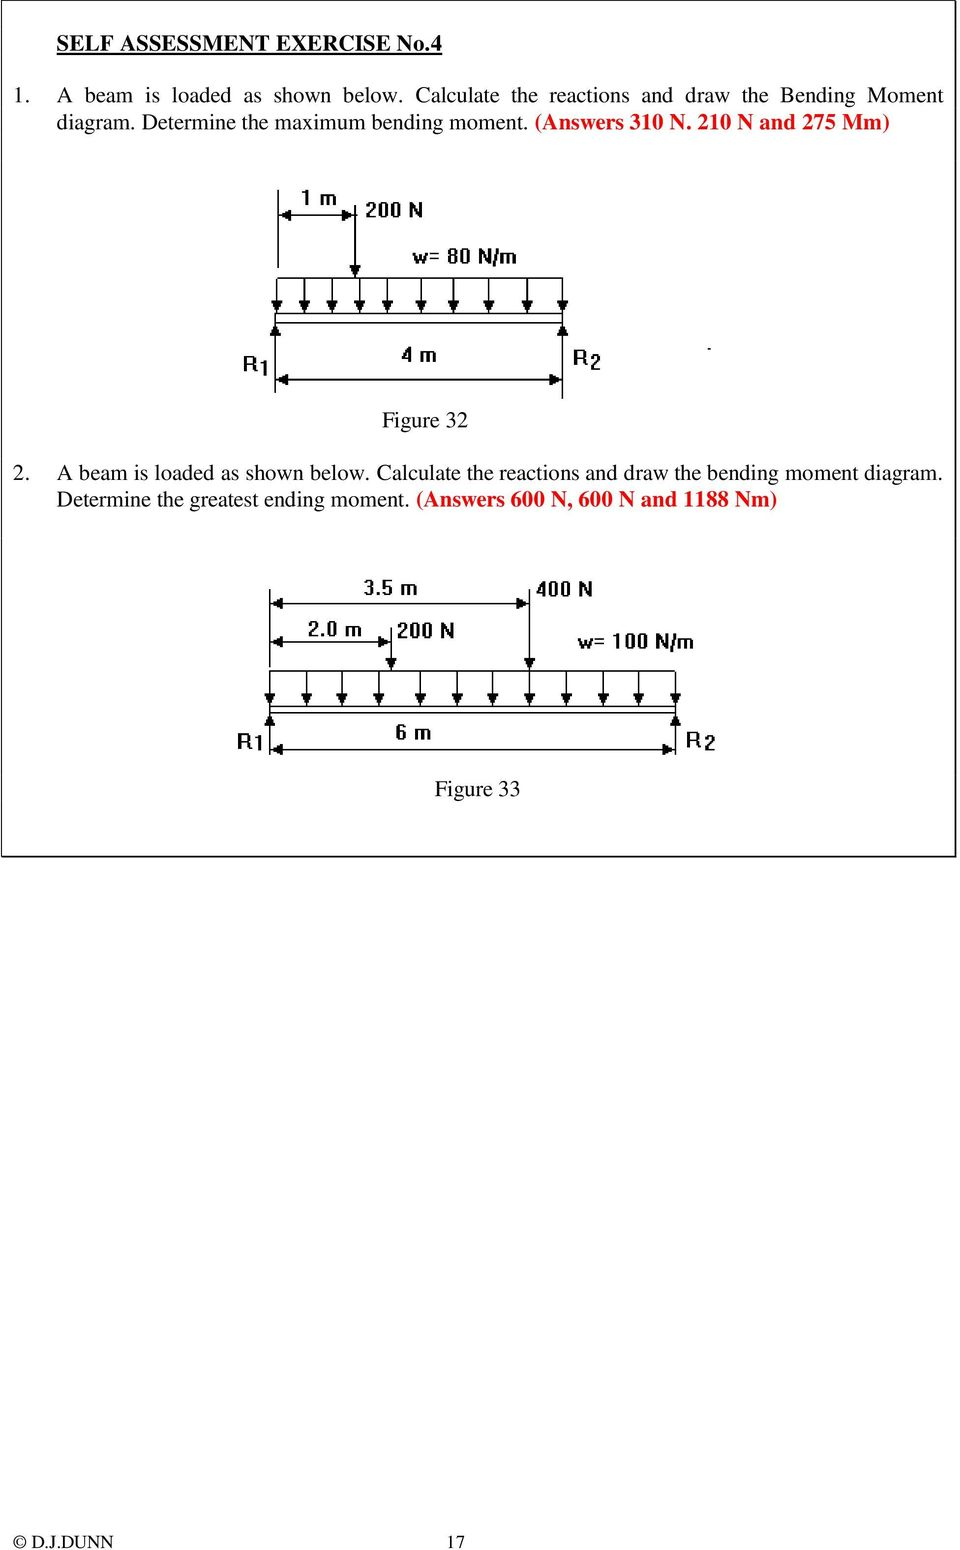 Mechanics Of Solids Beams Tutorial 2 Shear Force And Bending Two Concentrated Loads Draw The Moment Diagrams Answers 310 N 210 275 Mm Figure 32 A